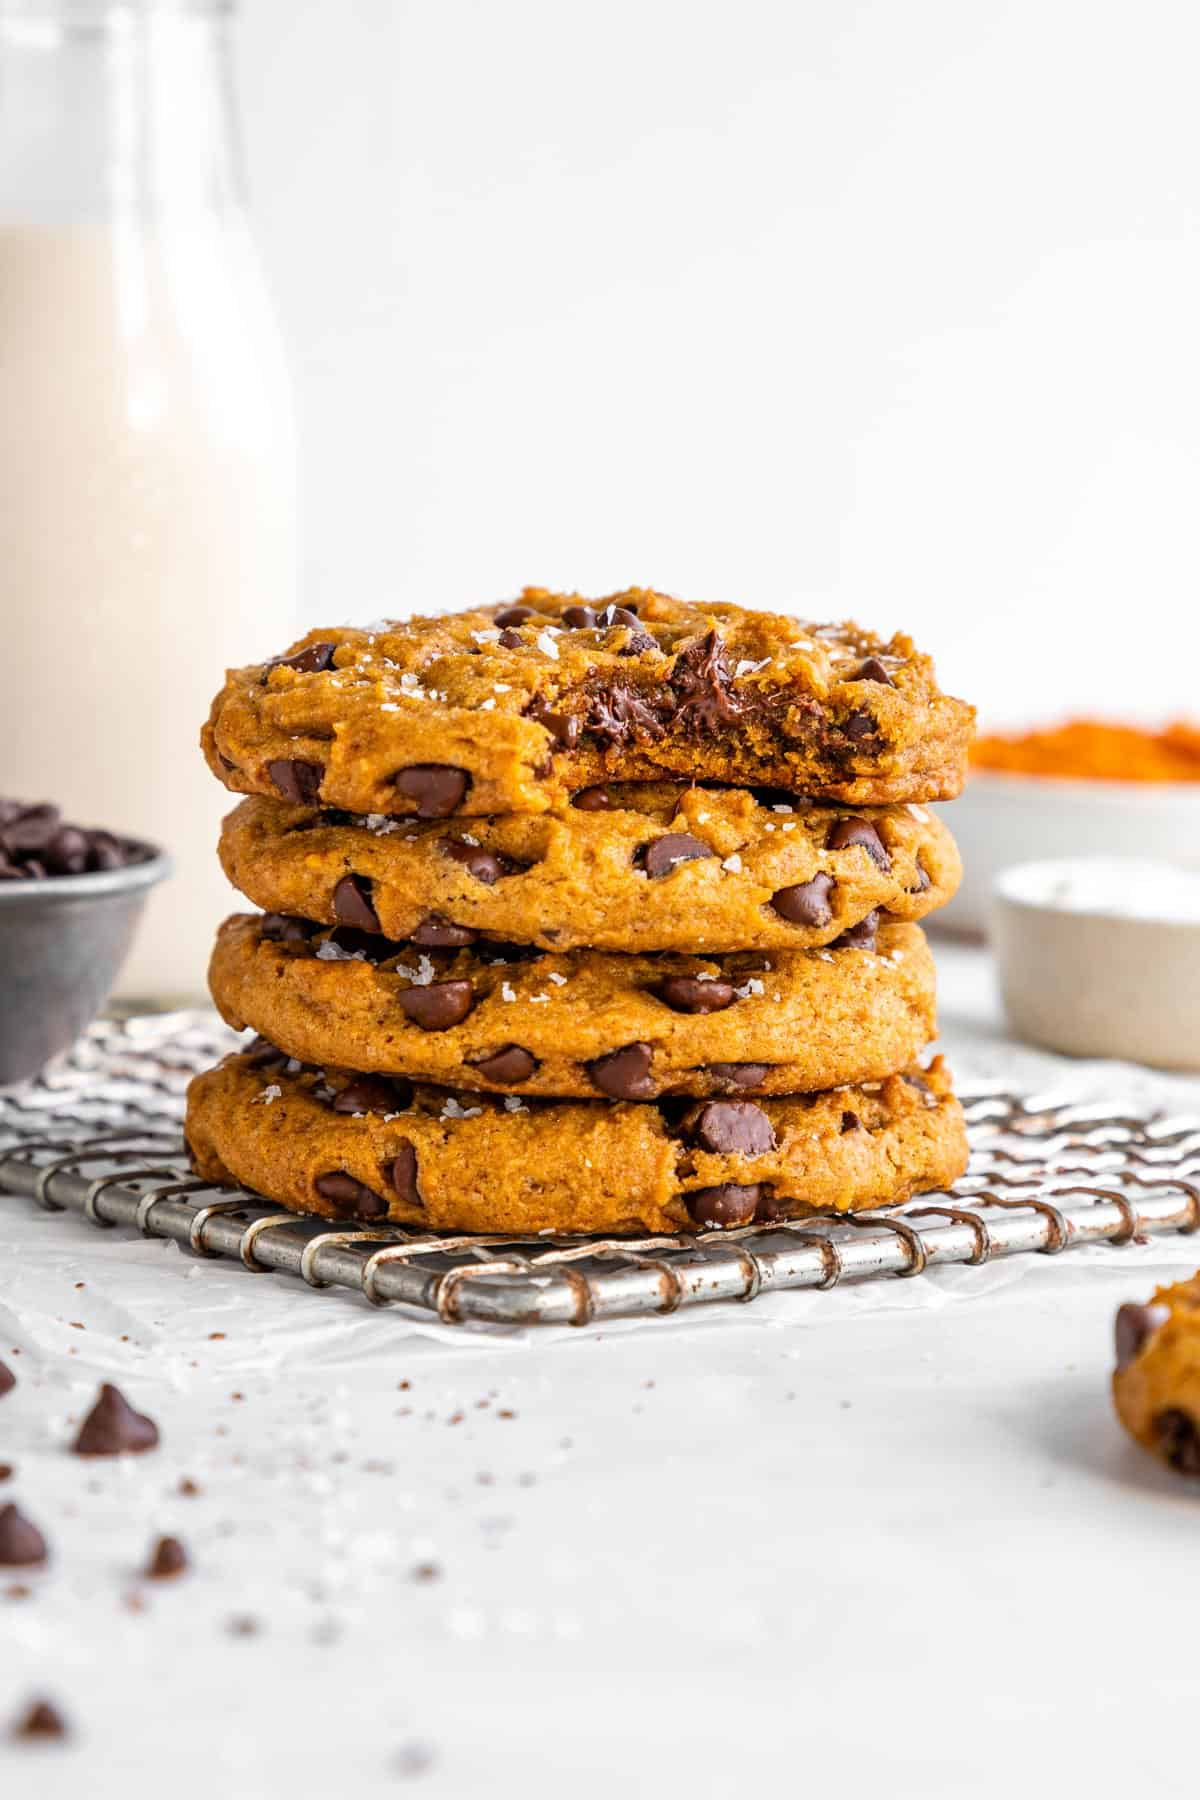 a stack of vegan pumpkin chocolate chip cookies with a bite taken out of the top cookie